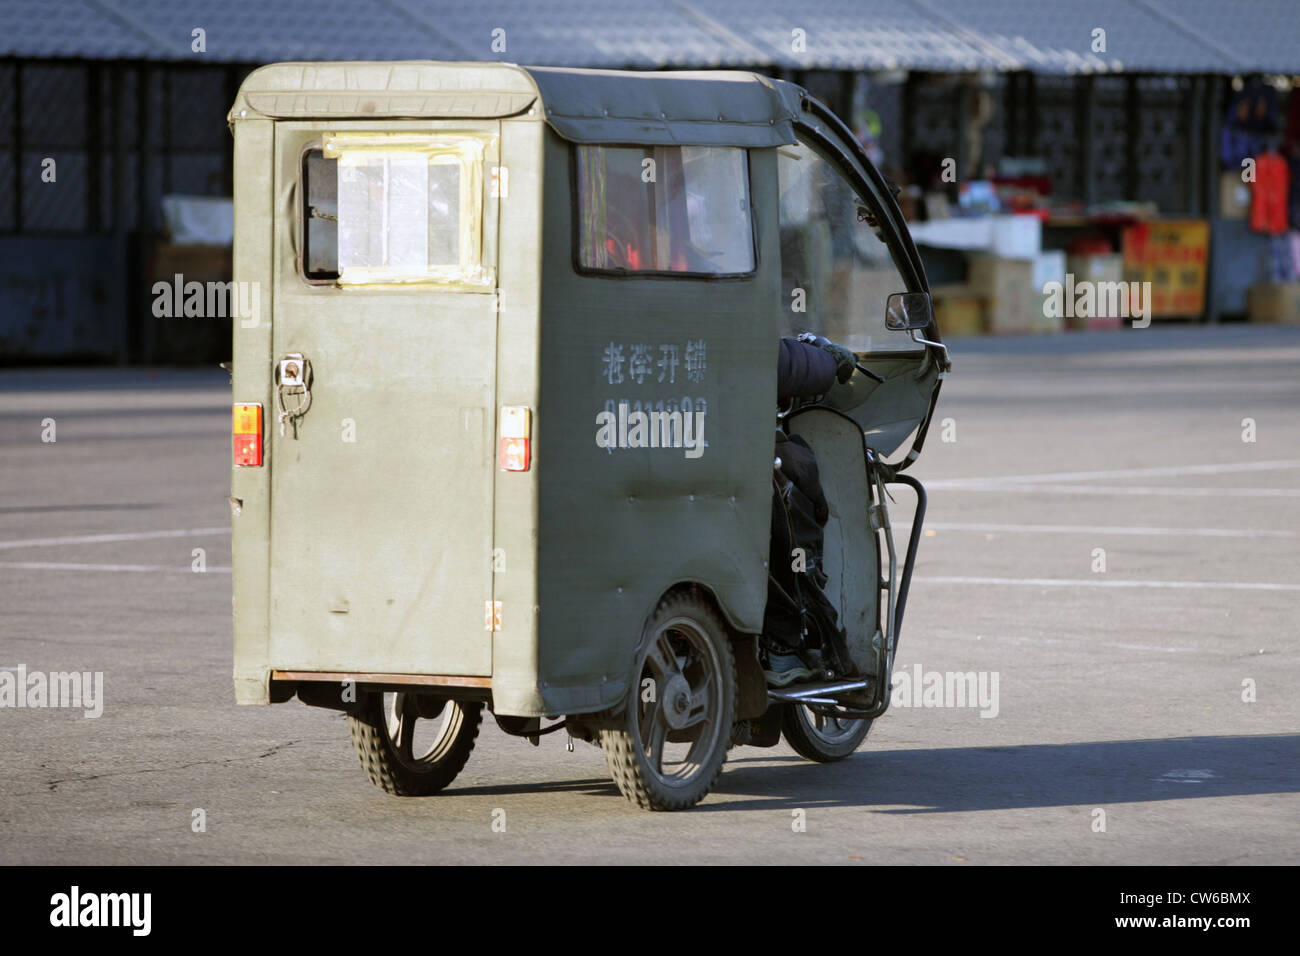 Beijing, a motorized tricycle in traffic - Stock Image